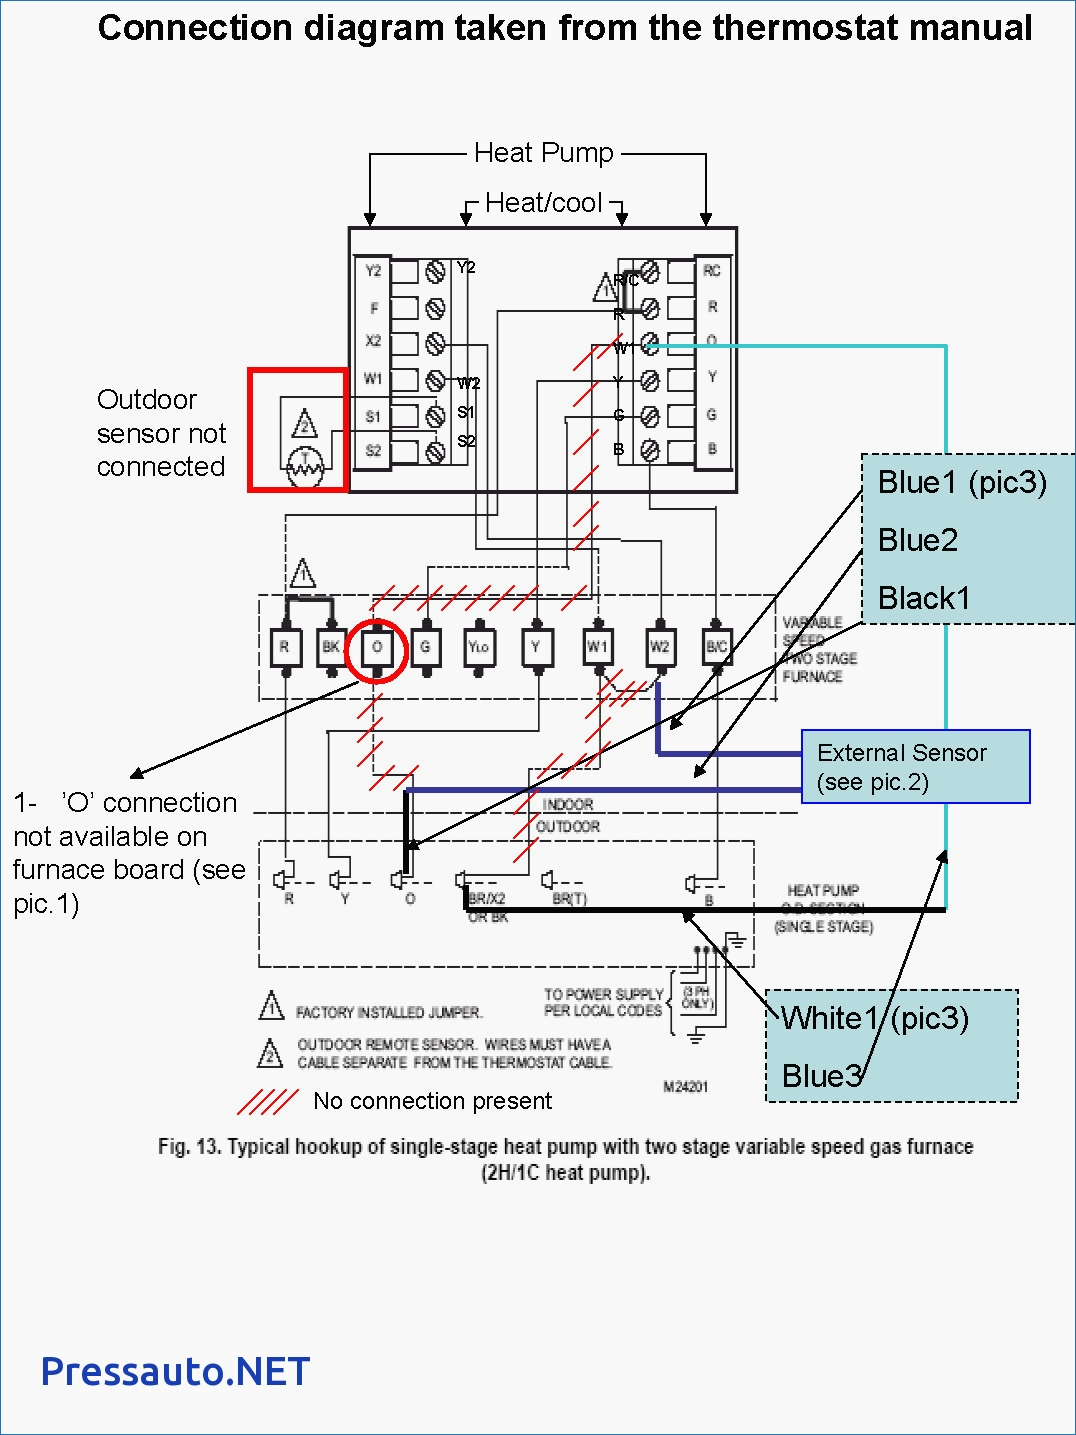 wh3 120 l wiring diagram Collection-Wh3 120 L Wiring Diagram Luxury fortable Lennox 97l4801 Wiring Diagram Electrical 4-s